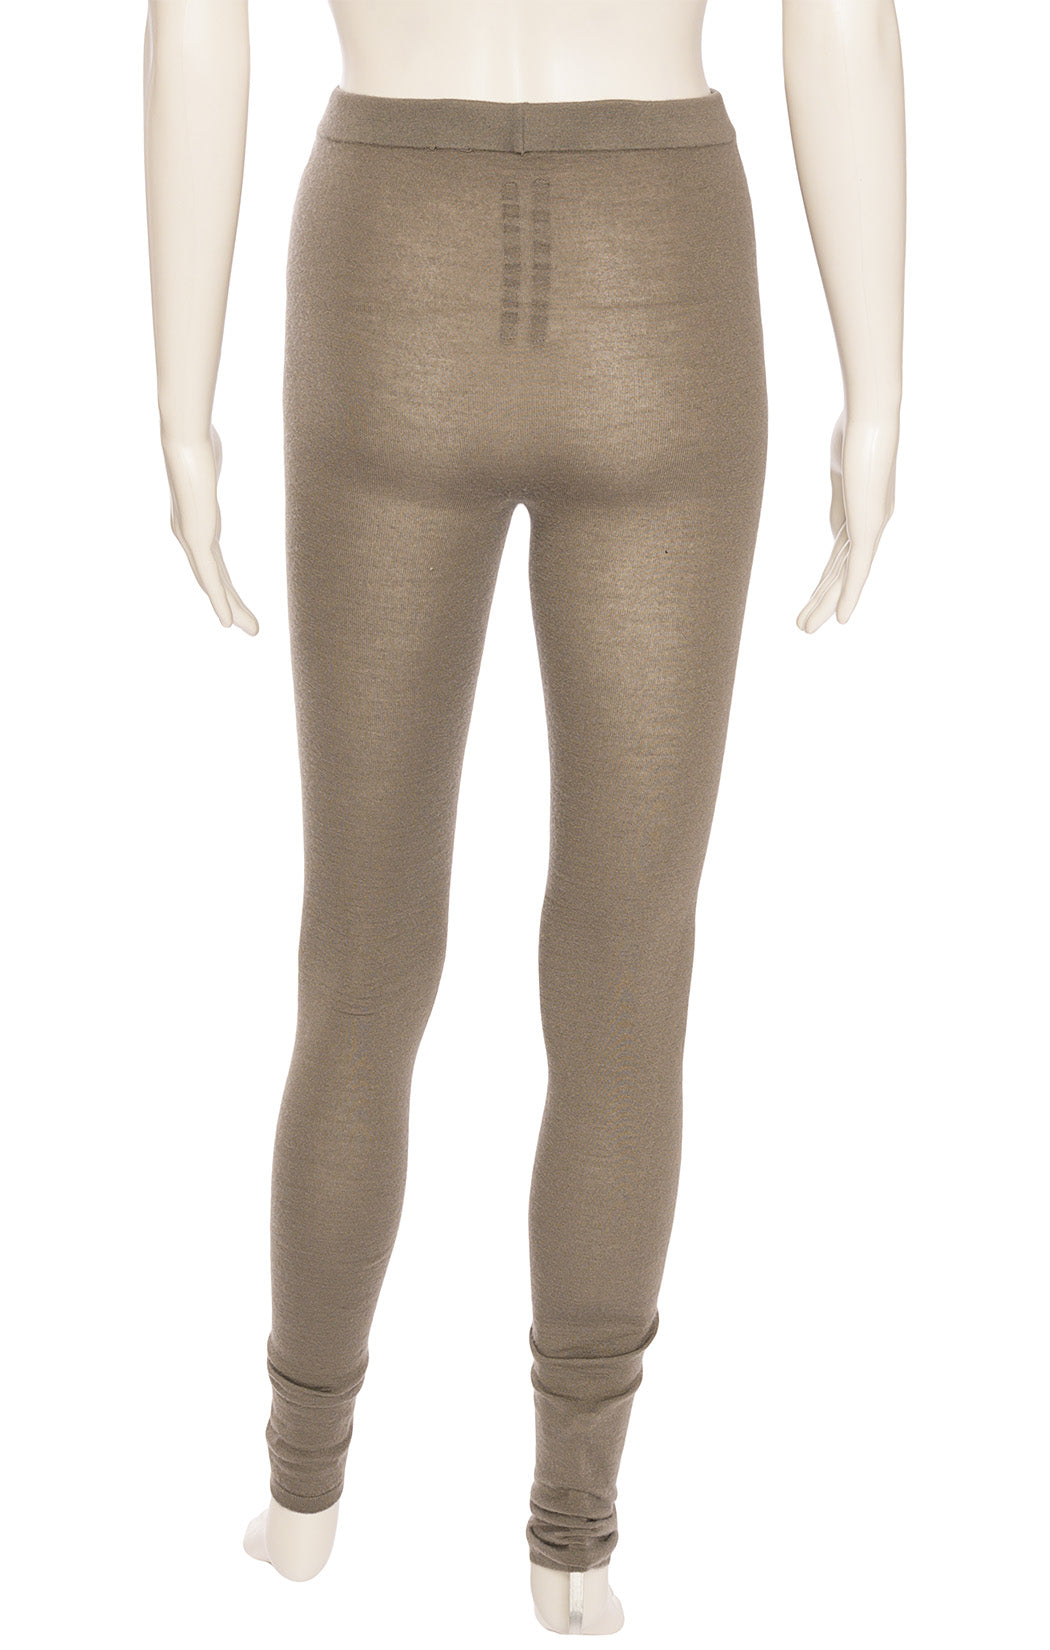 Taupe first fitting leggings with elastic waistband